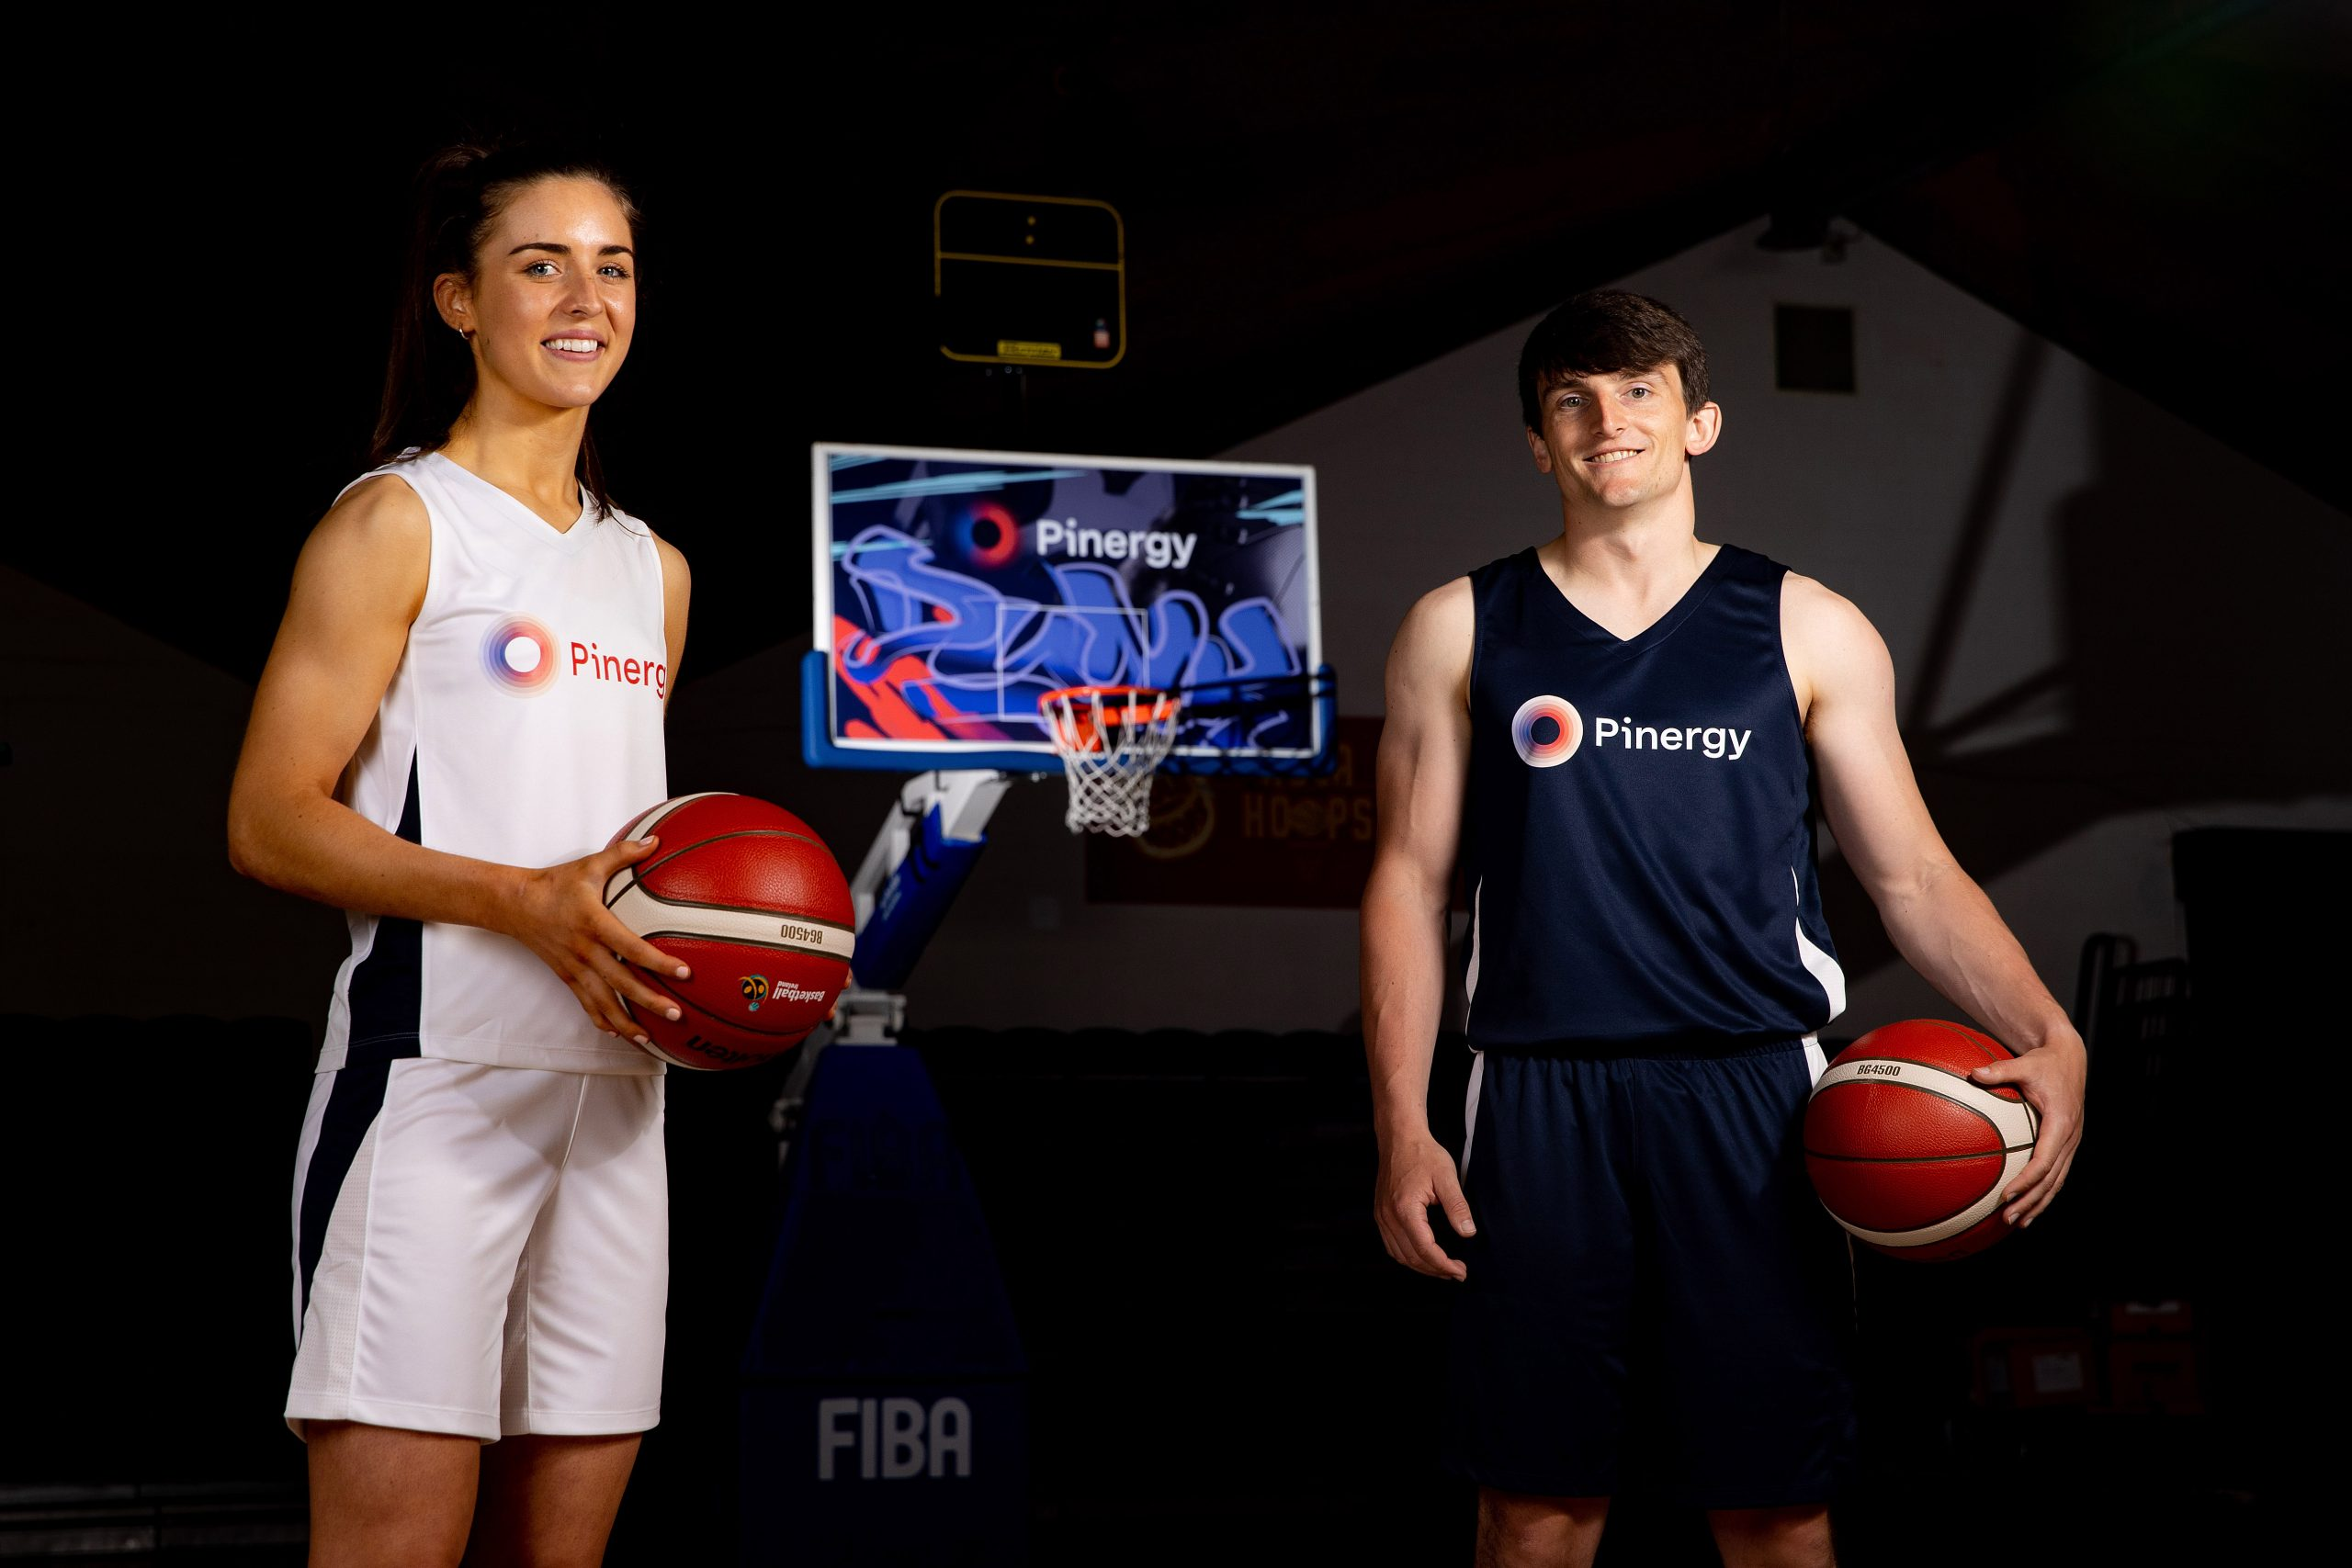 Pinergy to power the difference with Basketball Ireland as they announce partnership extension